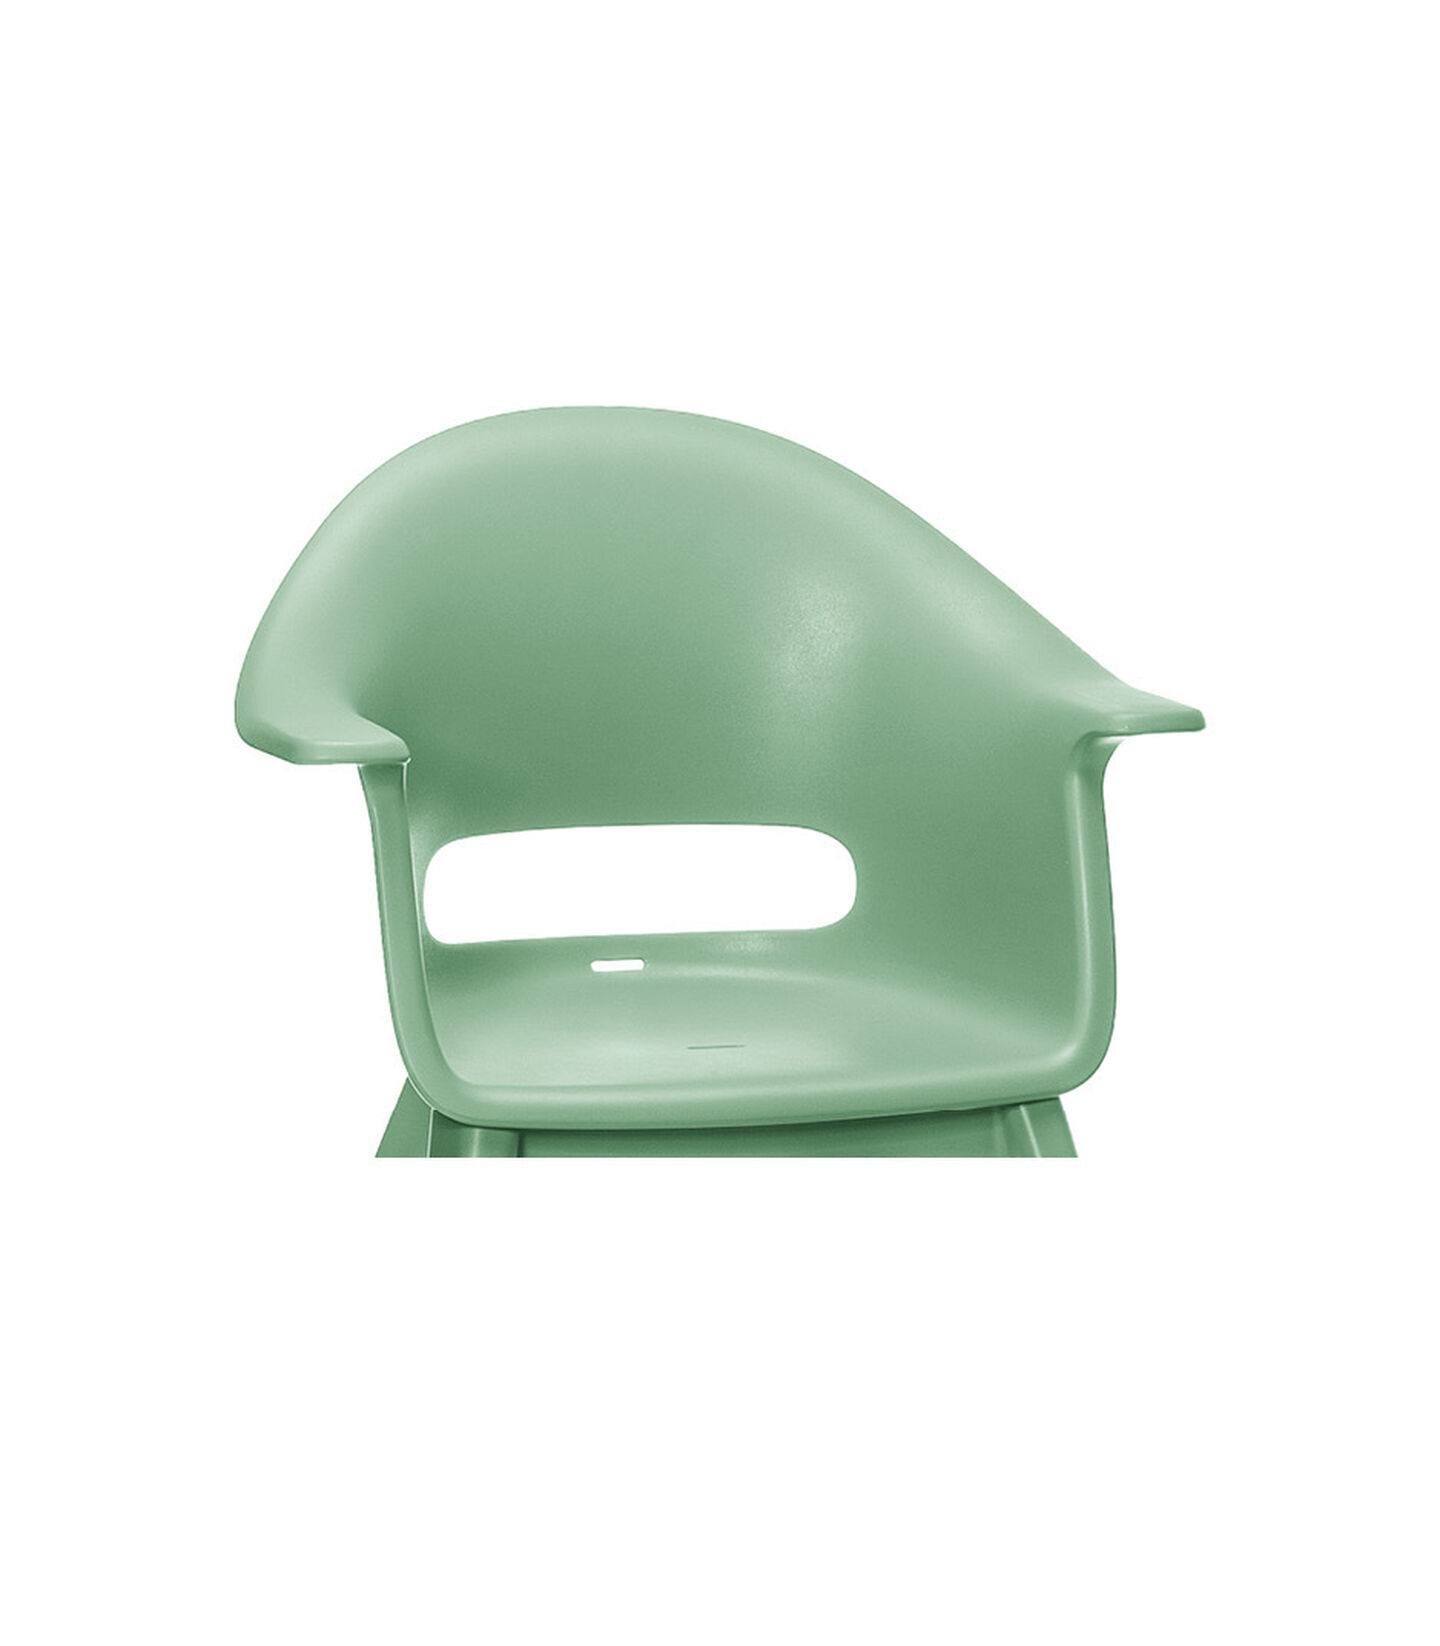 Stokke® Clikk™ Seat in Clover Green. Available as Spare part.